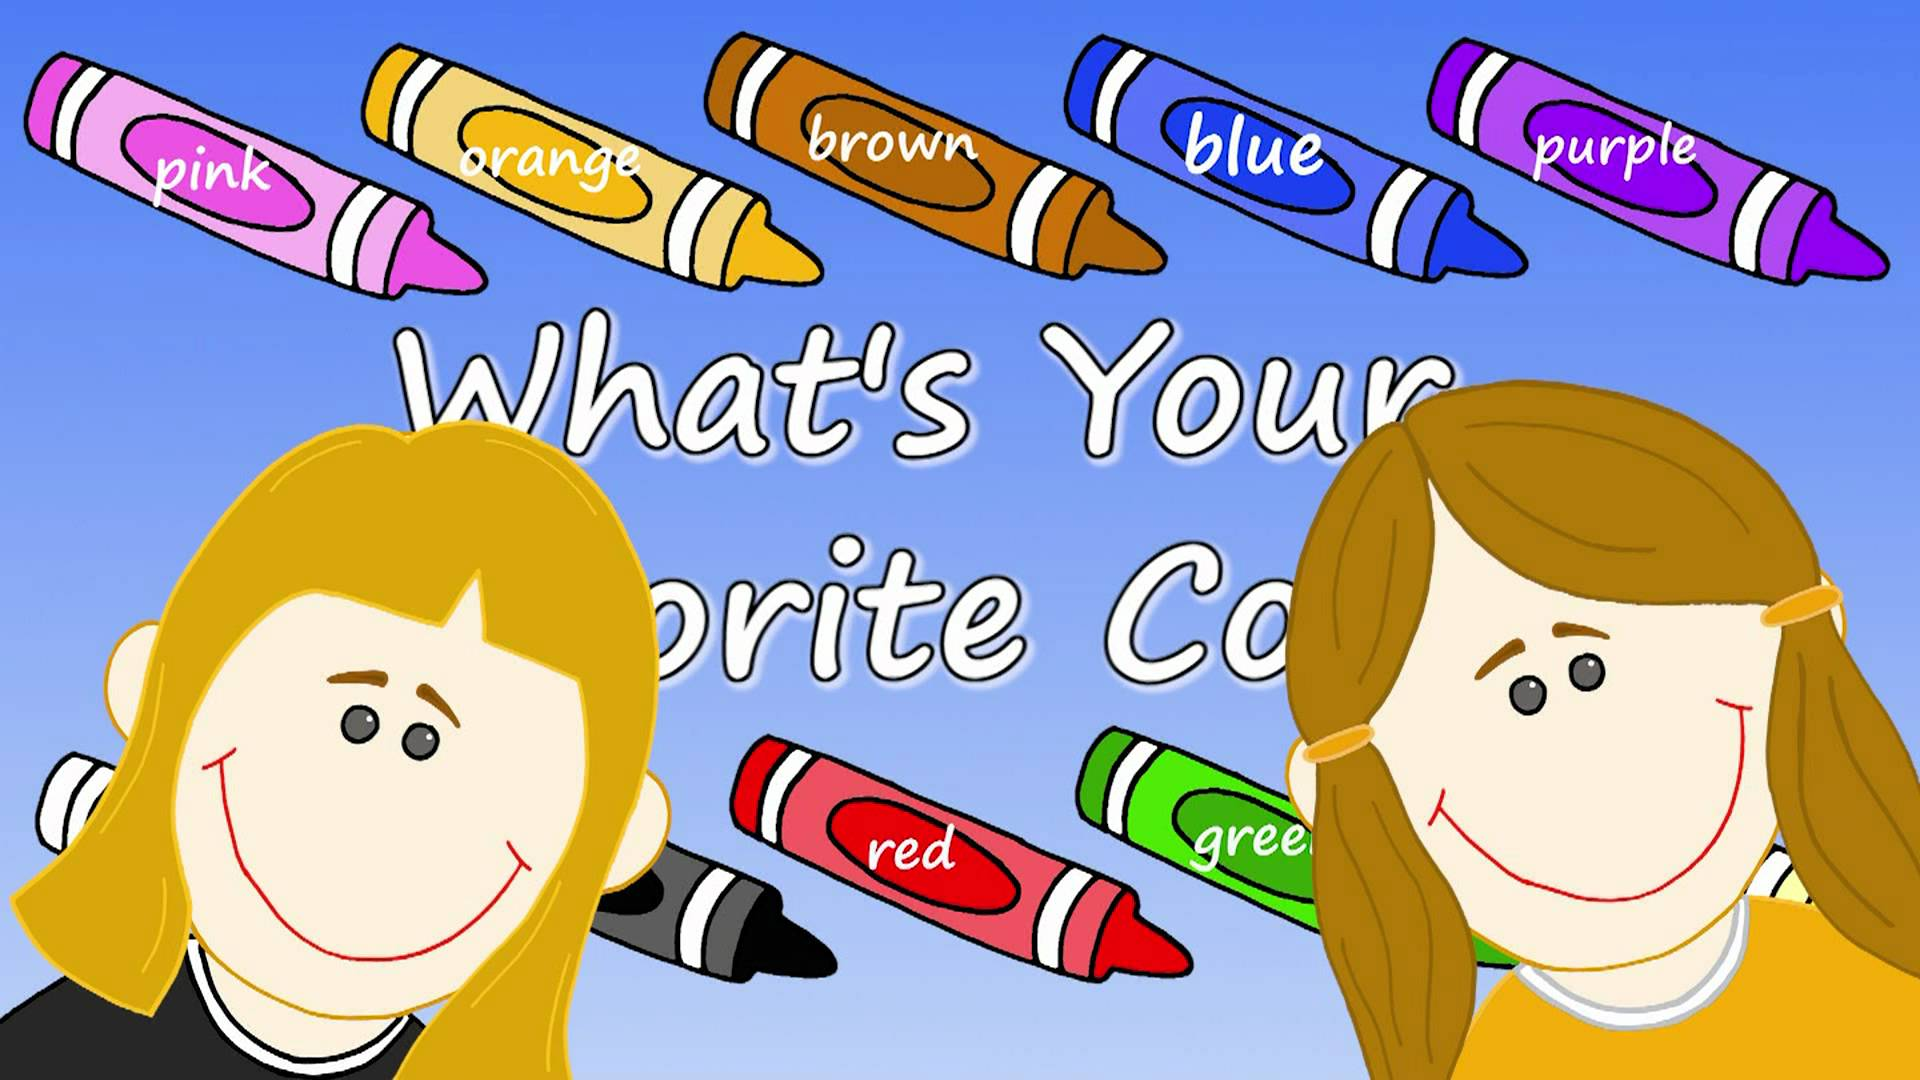 What's Your Favorite Color?.